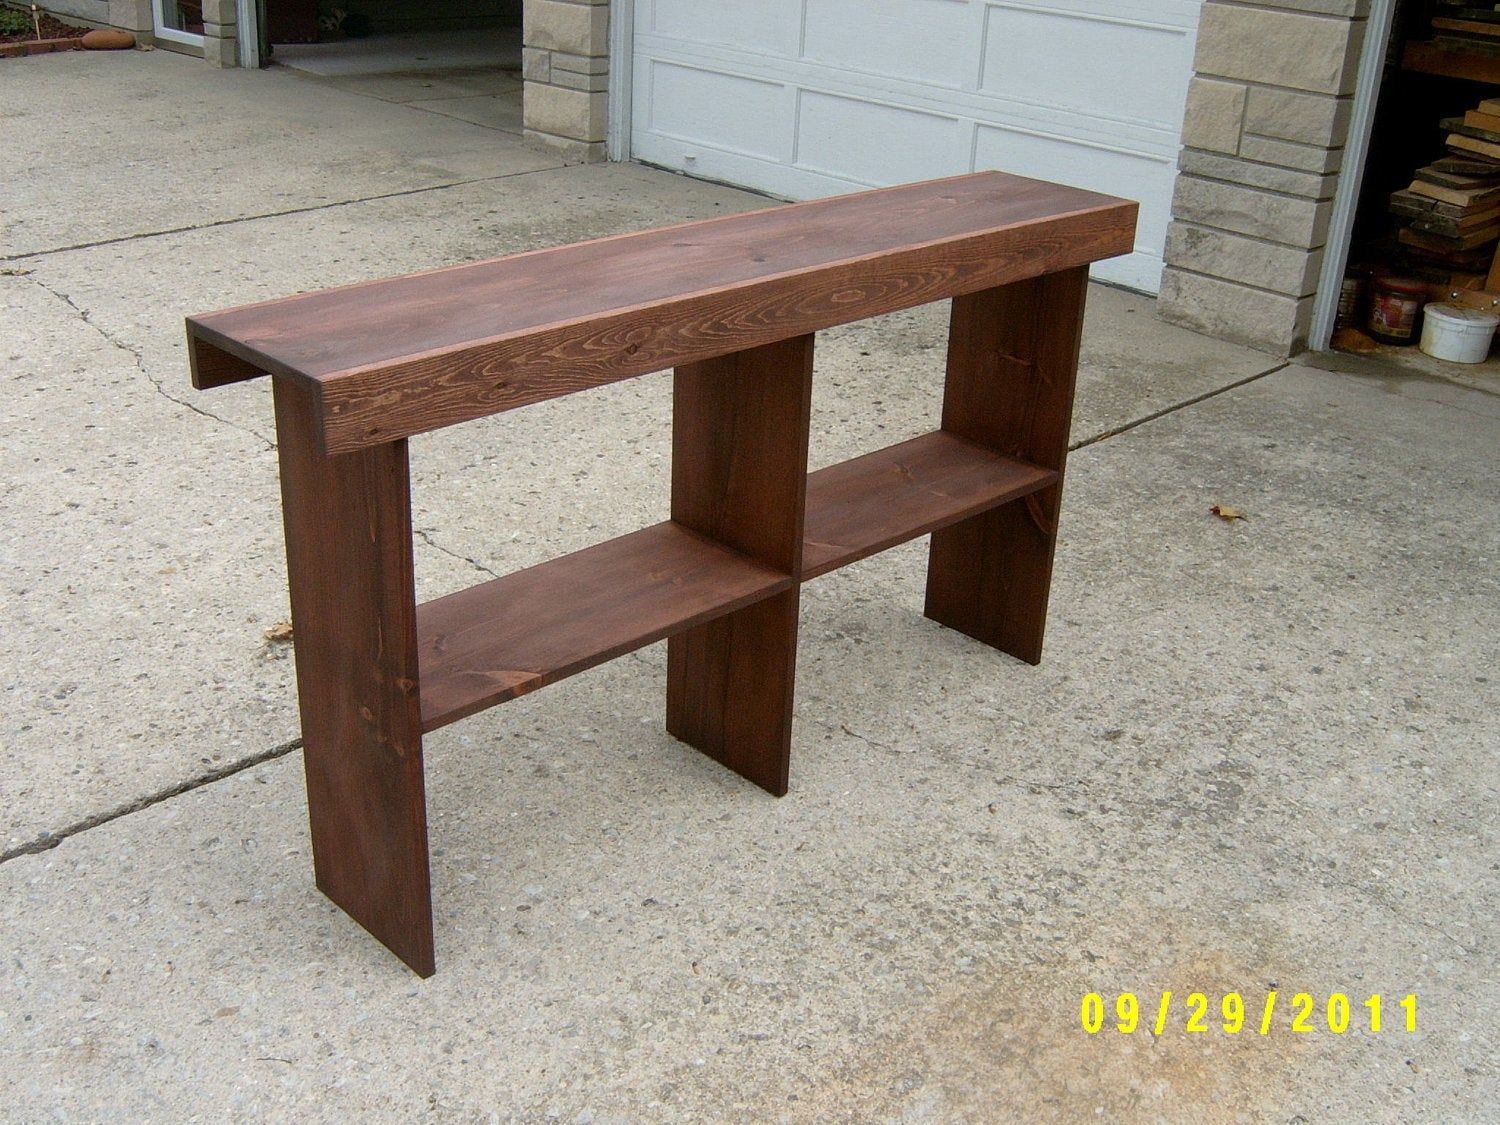 Wooden Bench Tall Bench Console Entryway Table Recycled Material Custom Made Farmhouse Style Wooden Bench Entryway Tables Bench